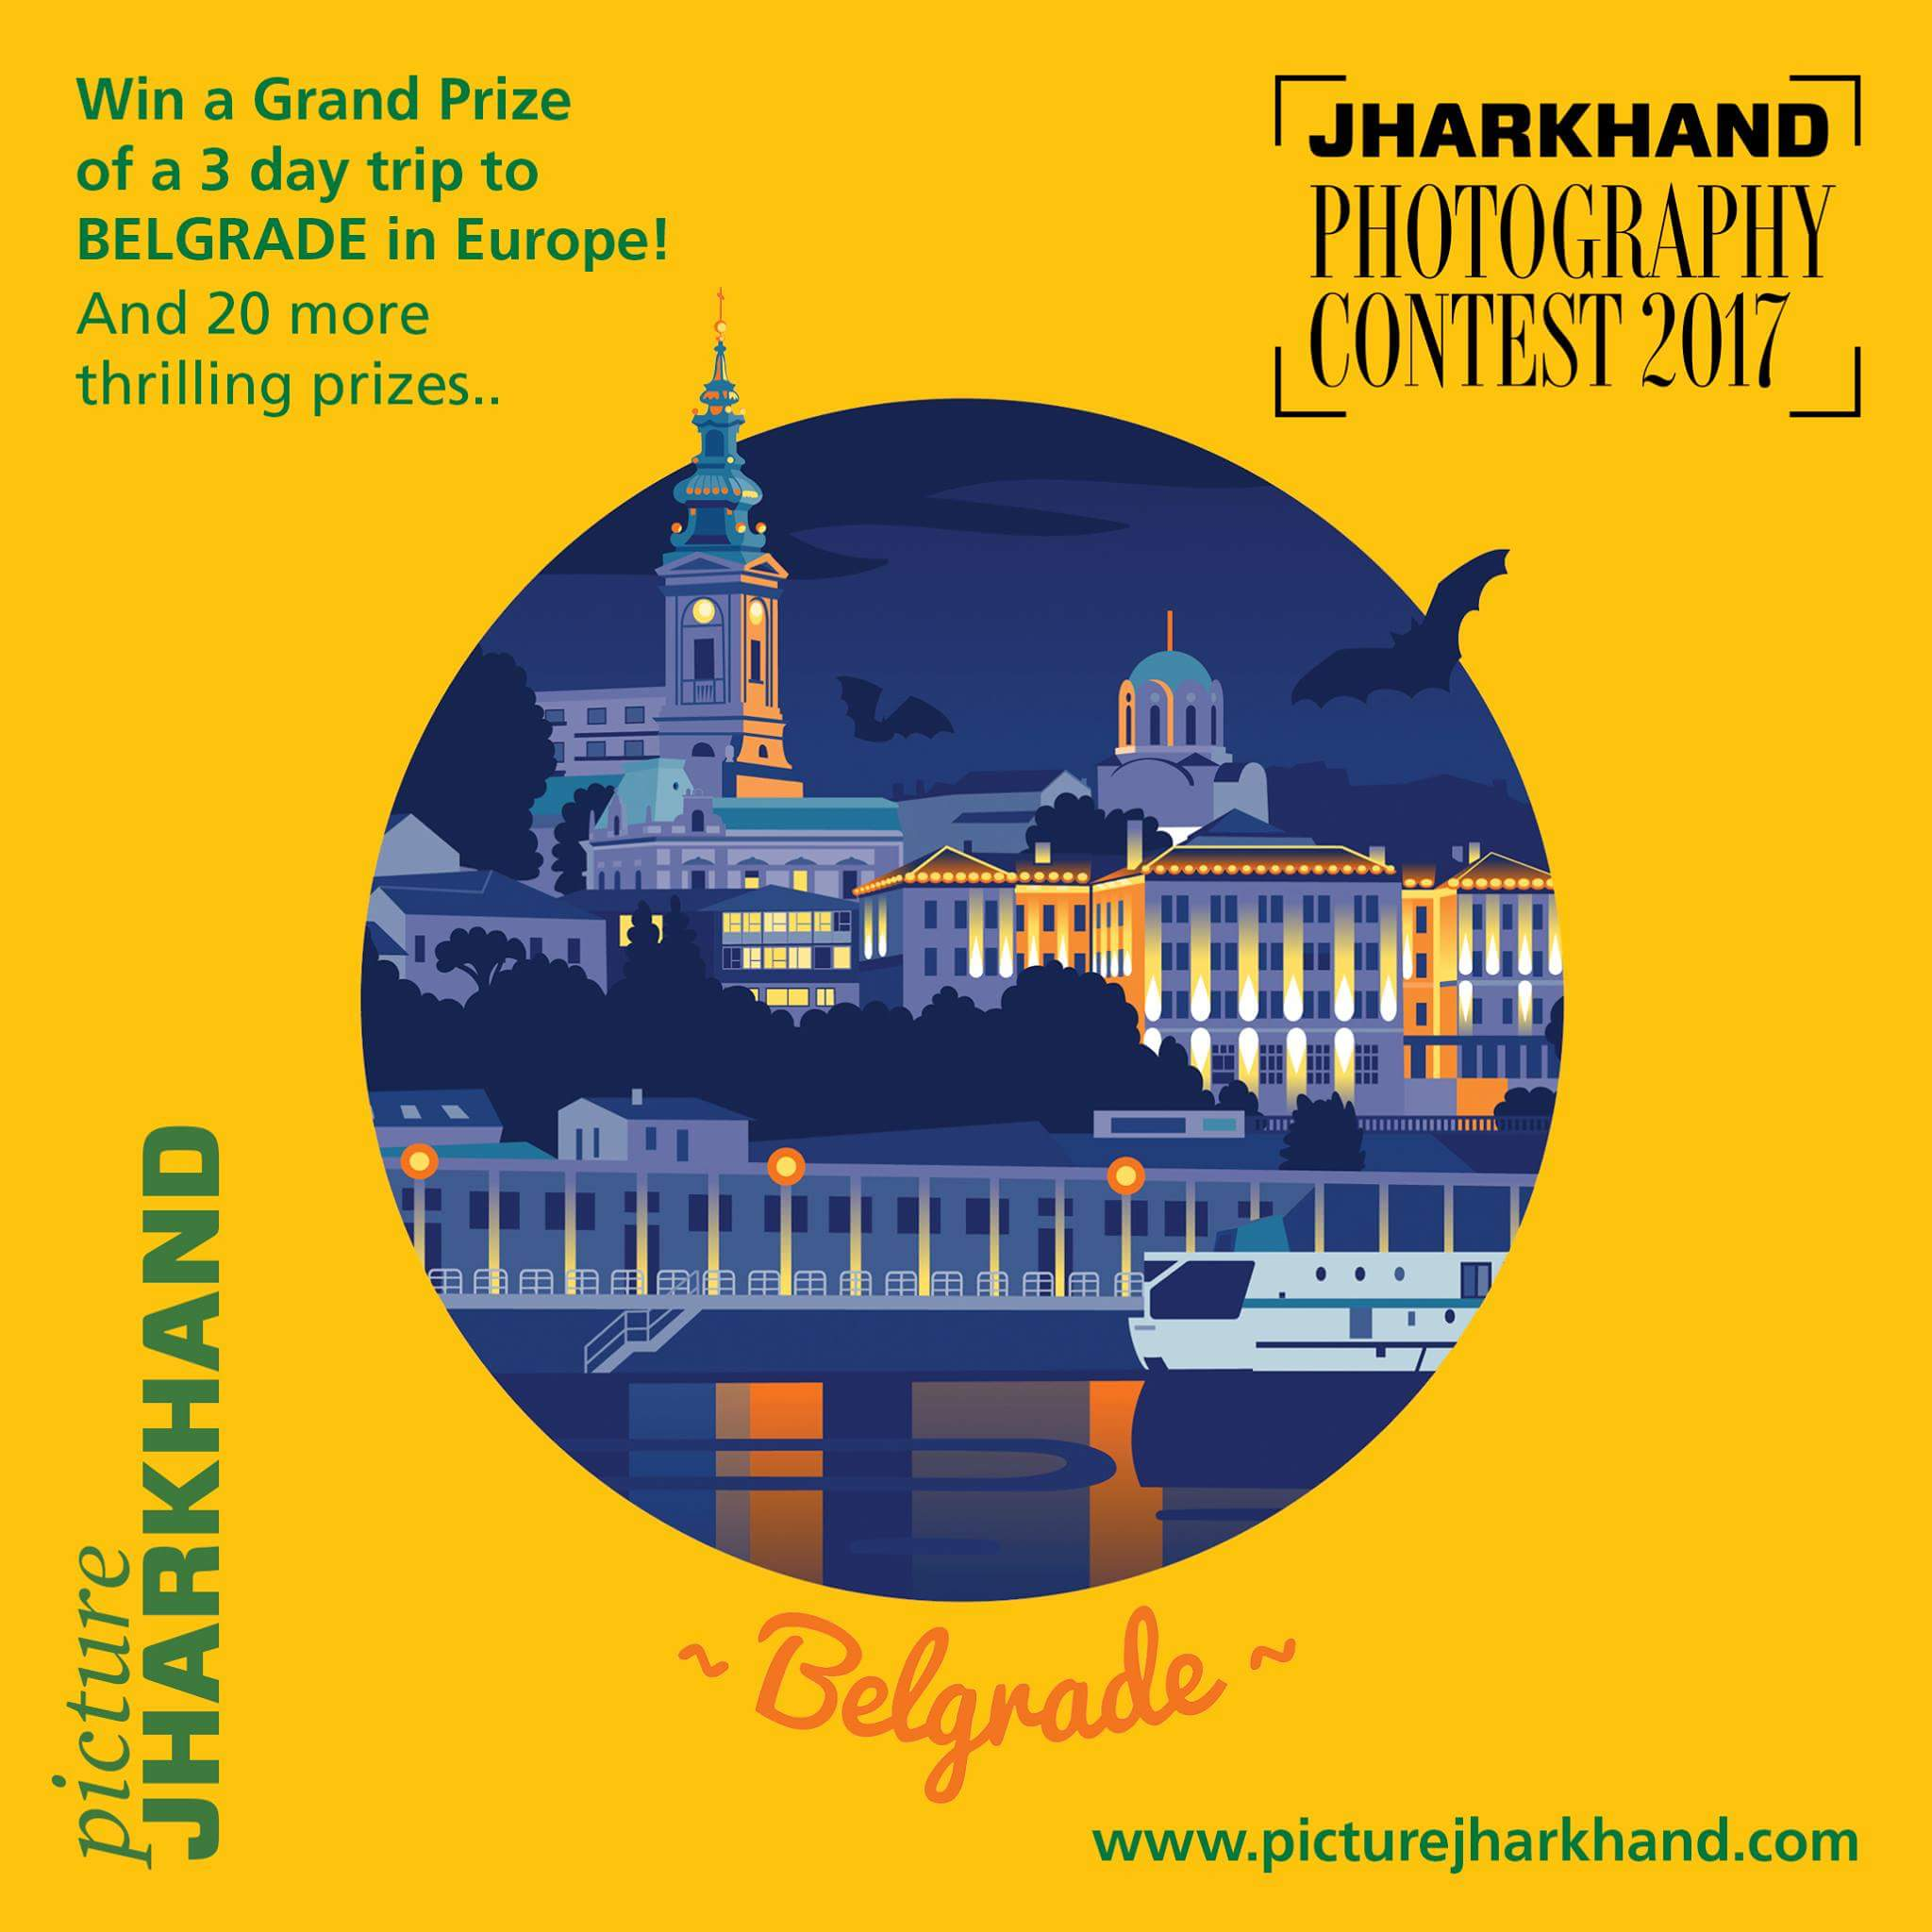 Picture Jharkhand Photography Contest 2017: Grand Prize : a 3-day trip to Belgrade